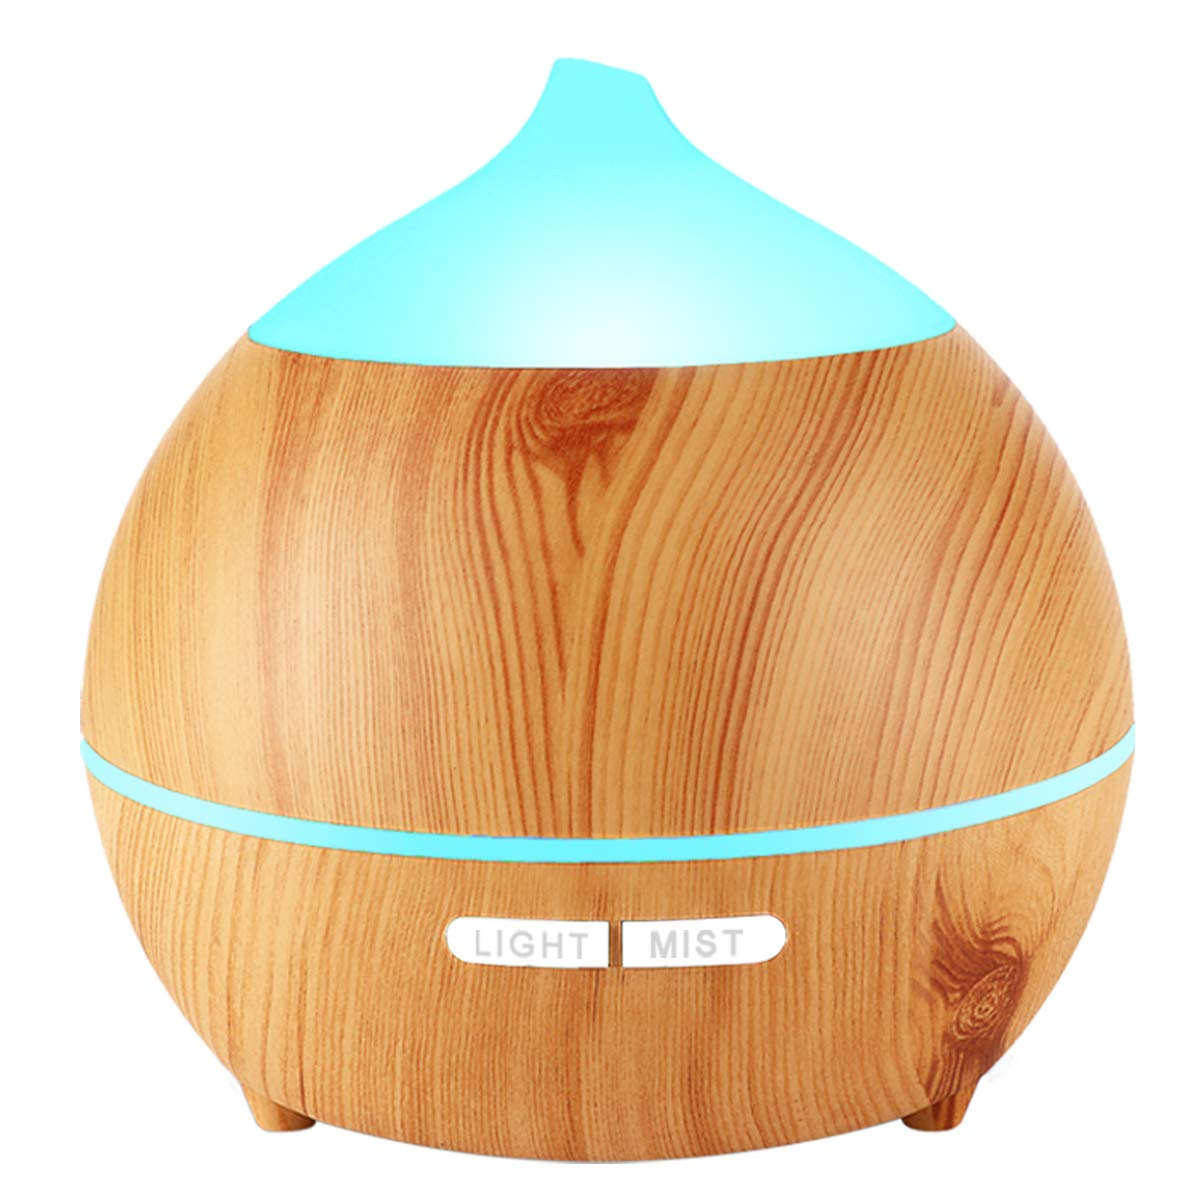 Essential Oil Diffuser, Appolab 250ml Wood Grain diffuser With 8 Colorful LED Light, Auto Shut Off, Adjustable Mode Aroma Diffuser For Baby, Yoga, Spa, Home, Office (1 Pack)